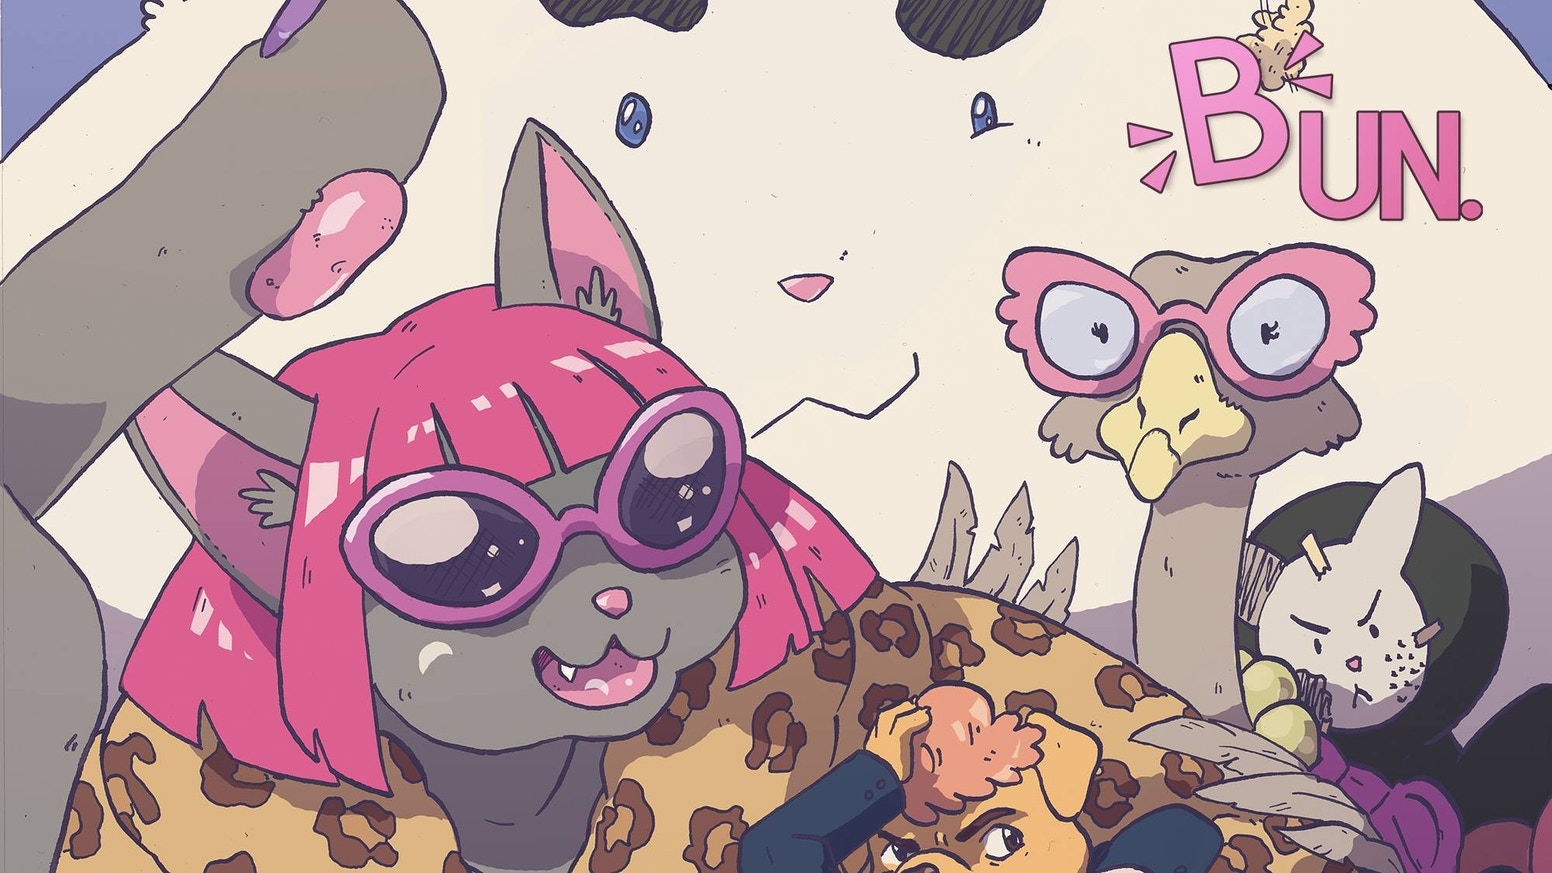 THE INCREDIBLE BUN! #1. An all-ages story from MADIUS COMICS by ...